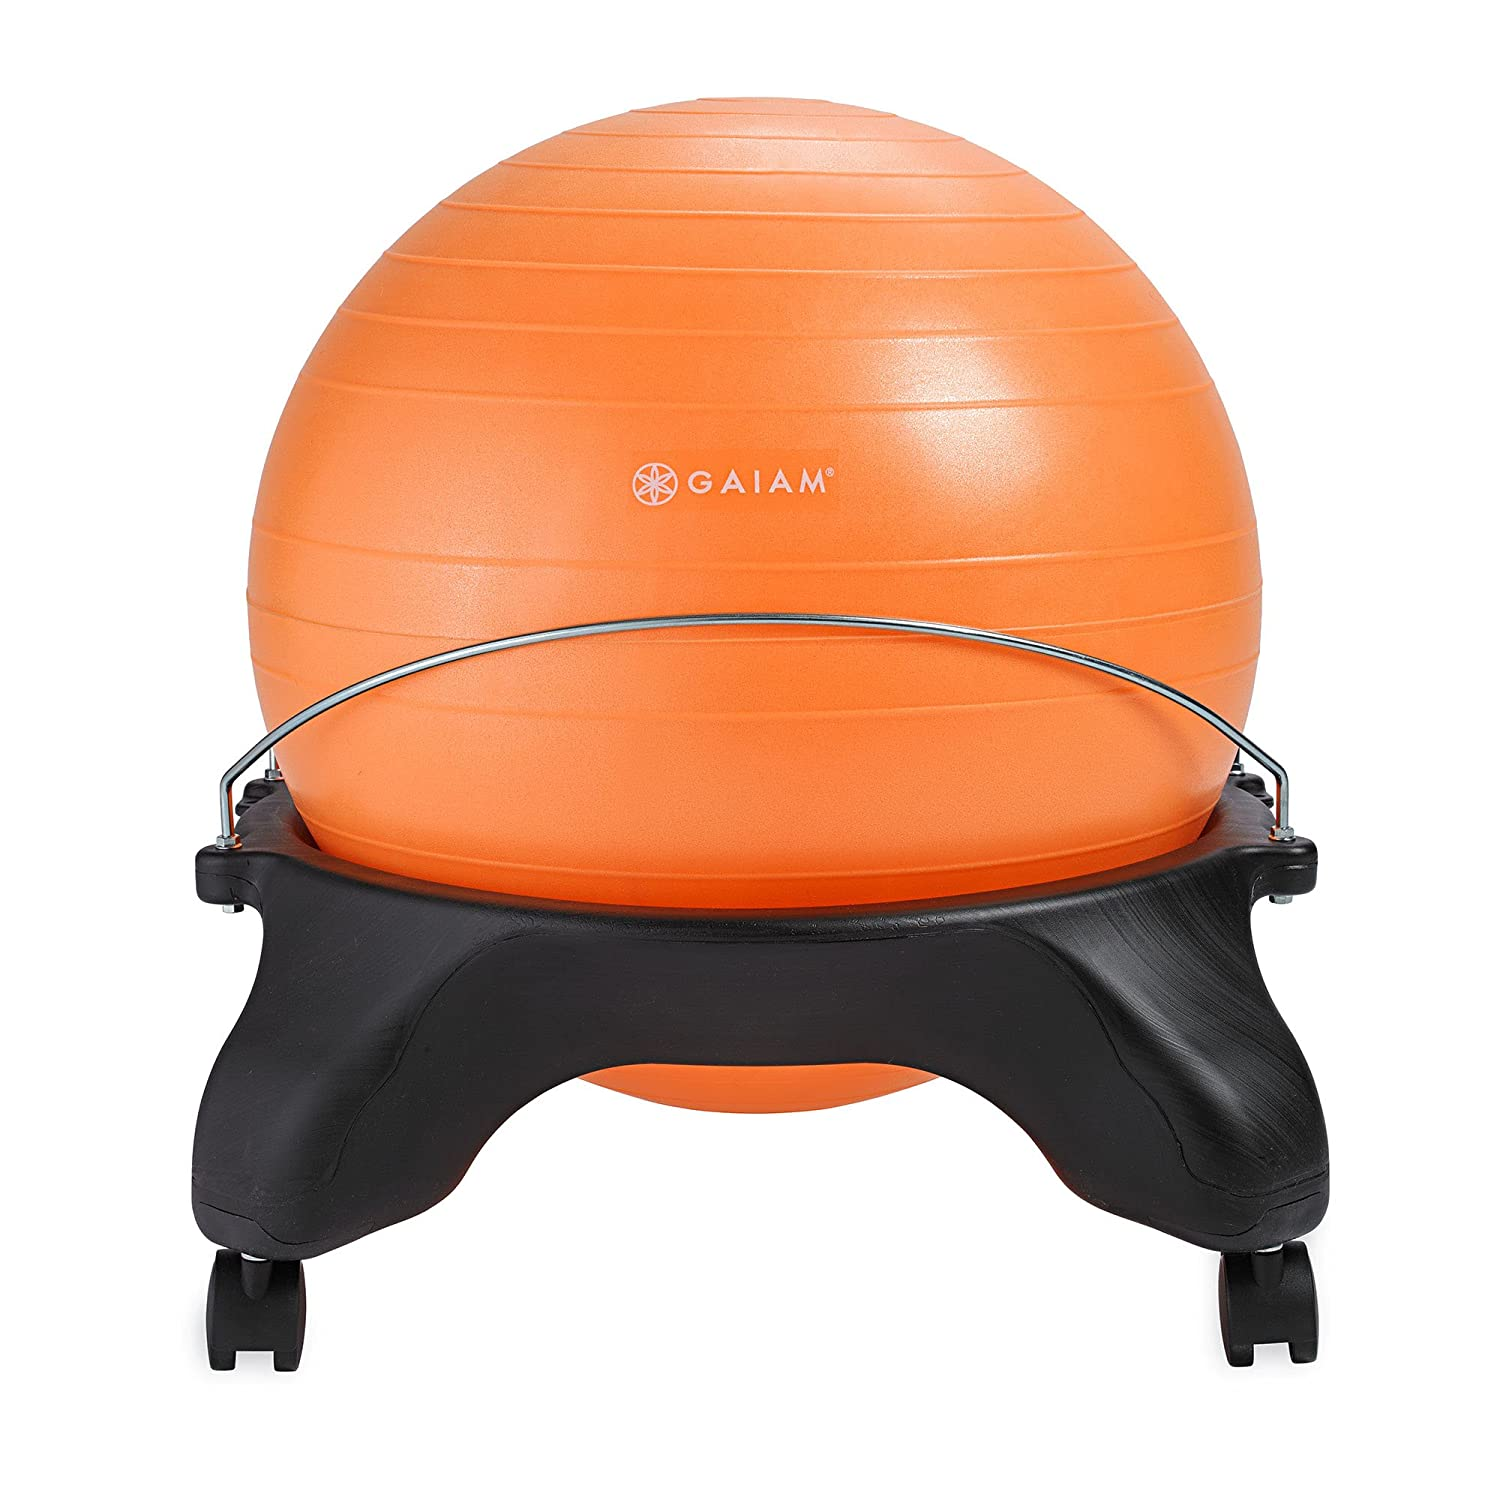 Gaiam Backless Ball Chair